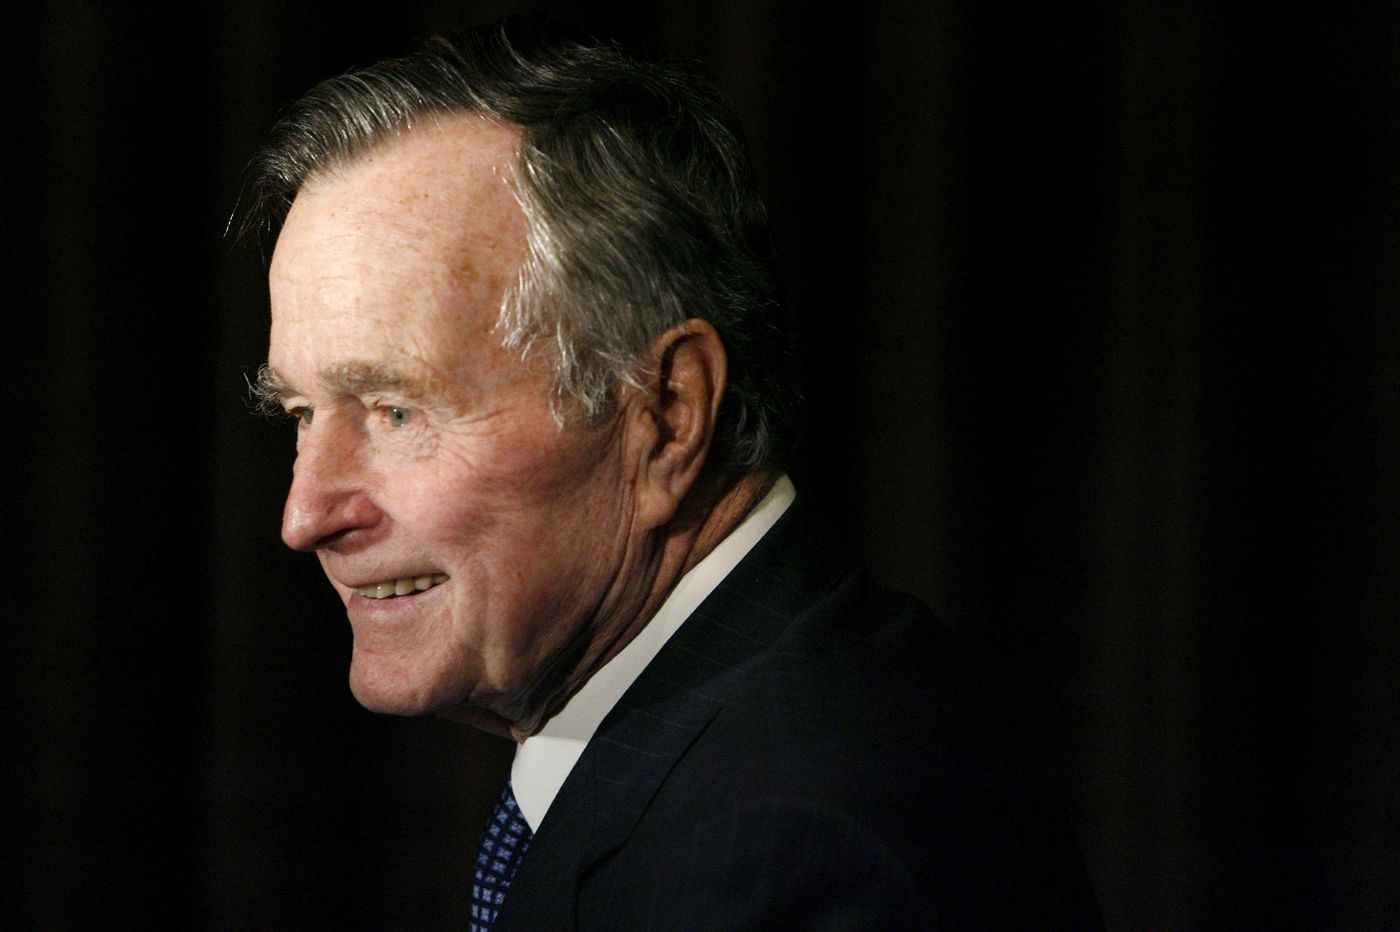 Photos: Remembering George H.W. Bush, 41st president of the U.S.